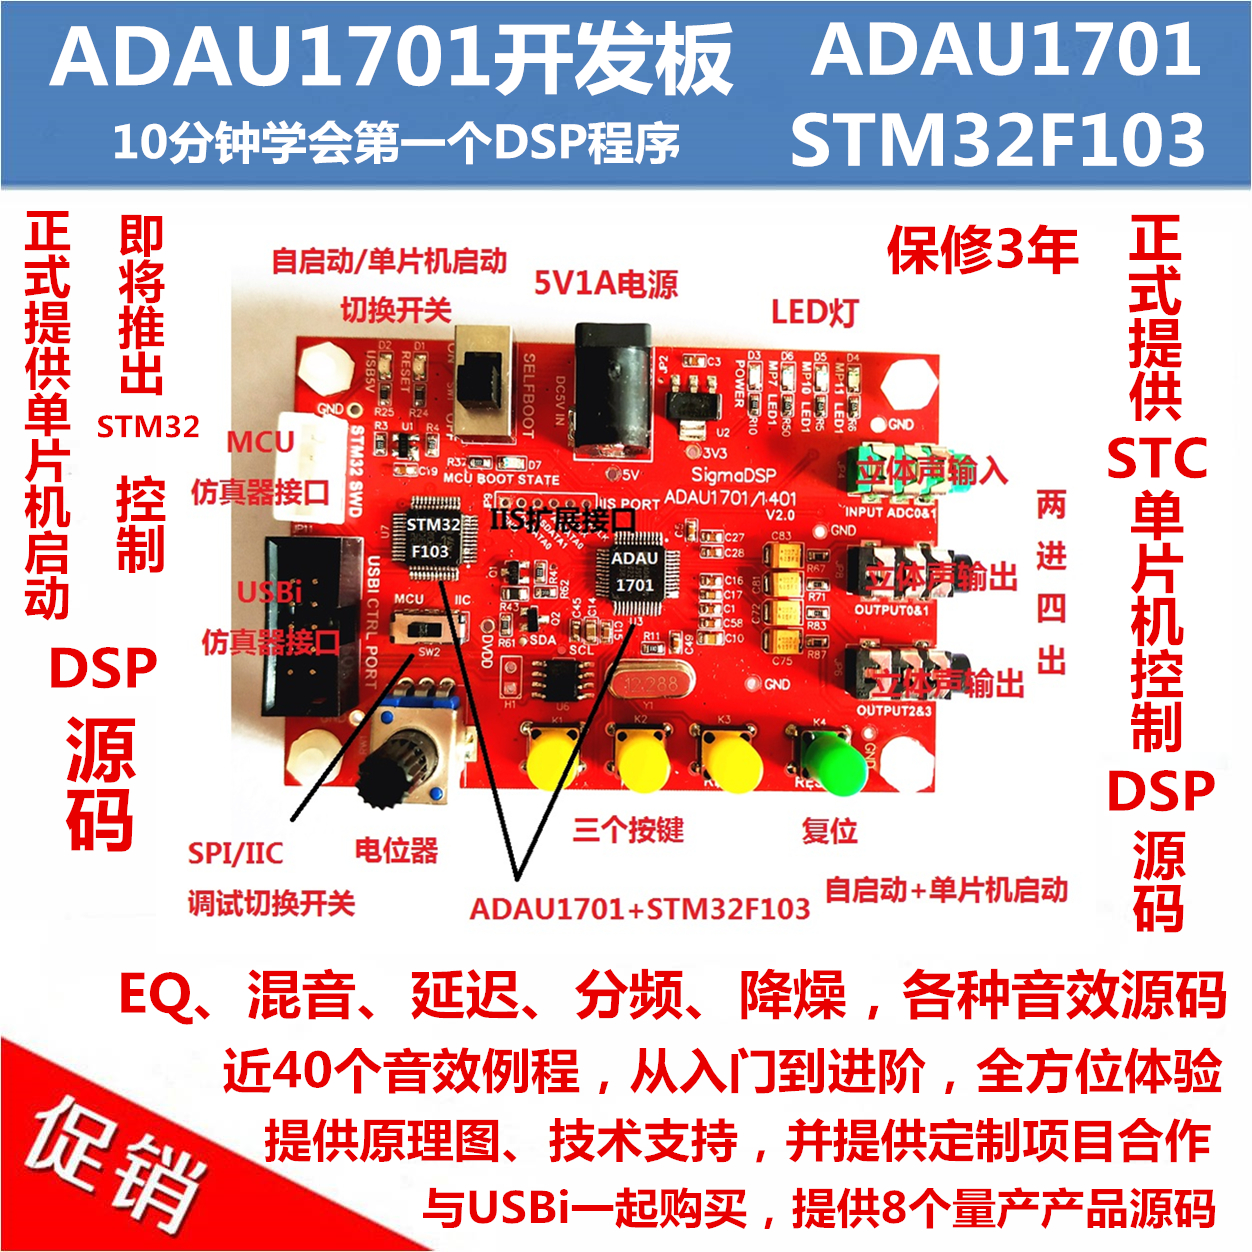 openadsp Open Source Community Liberal Adau1701 Development Board Sigmadsp Development Board Mcu Dsp